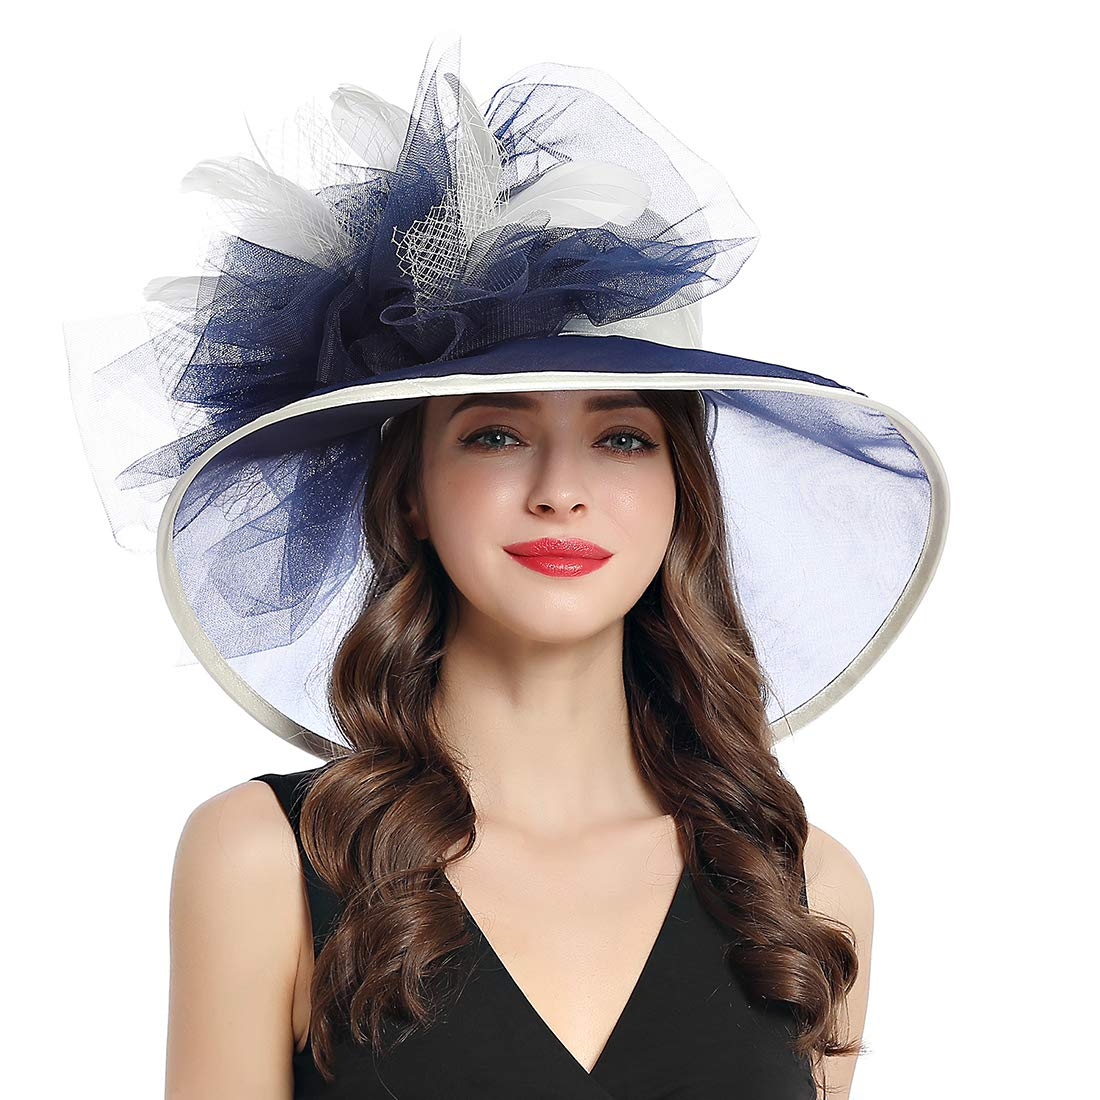 Women's Organza Church Kentucky Derby Fascinator Tea Party Wedding Hat (Beige Navyblue Feathers)